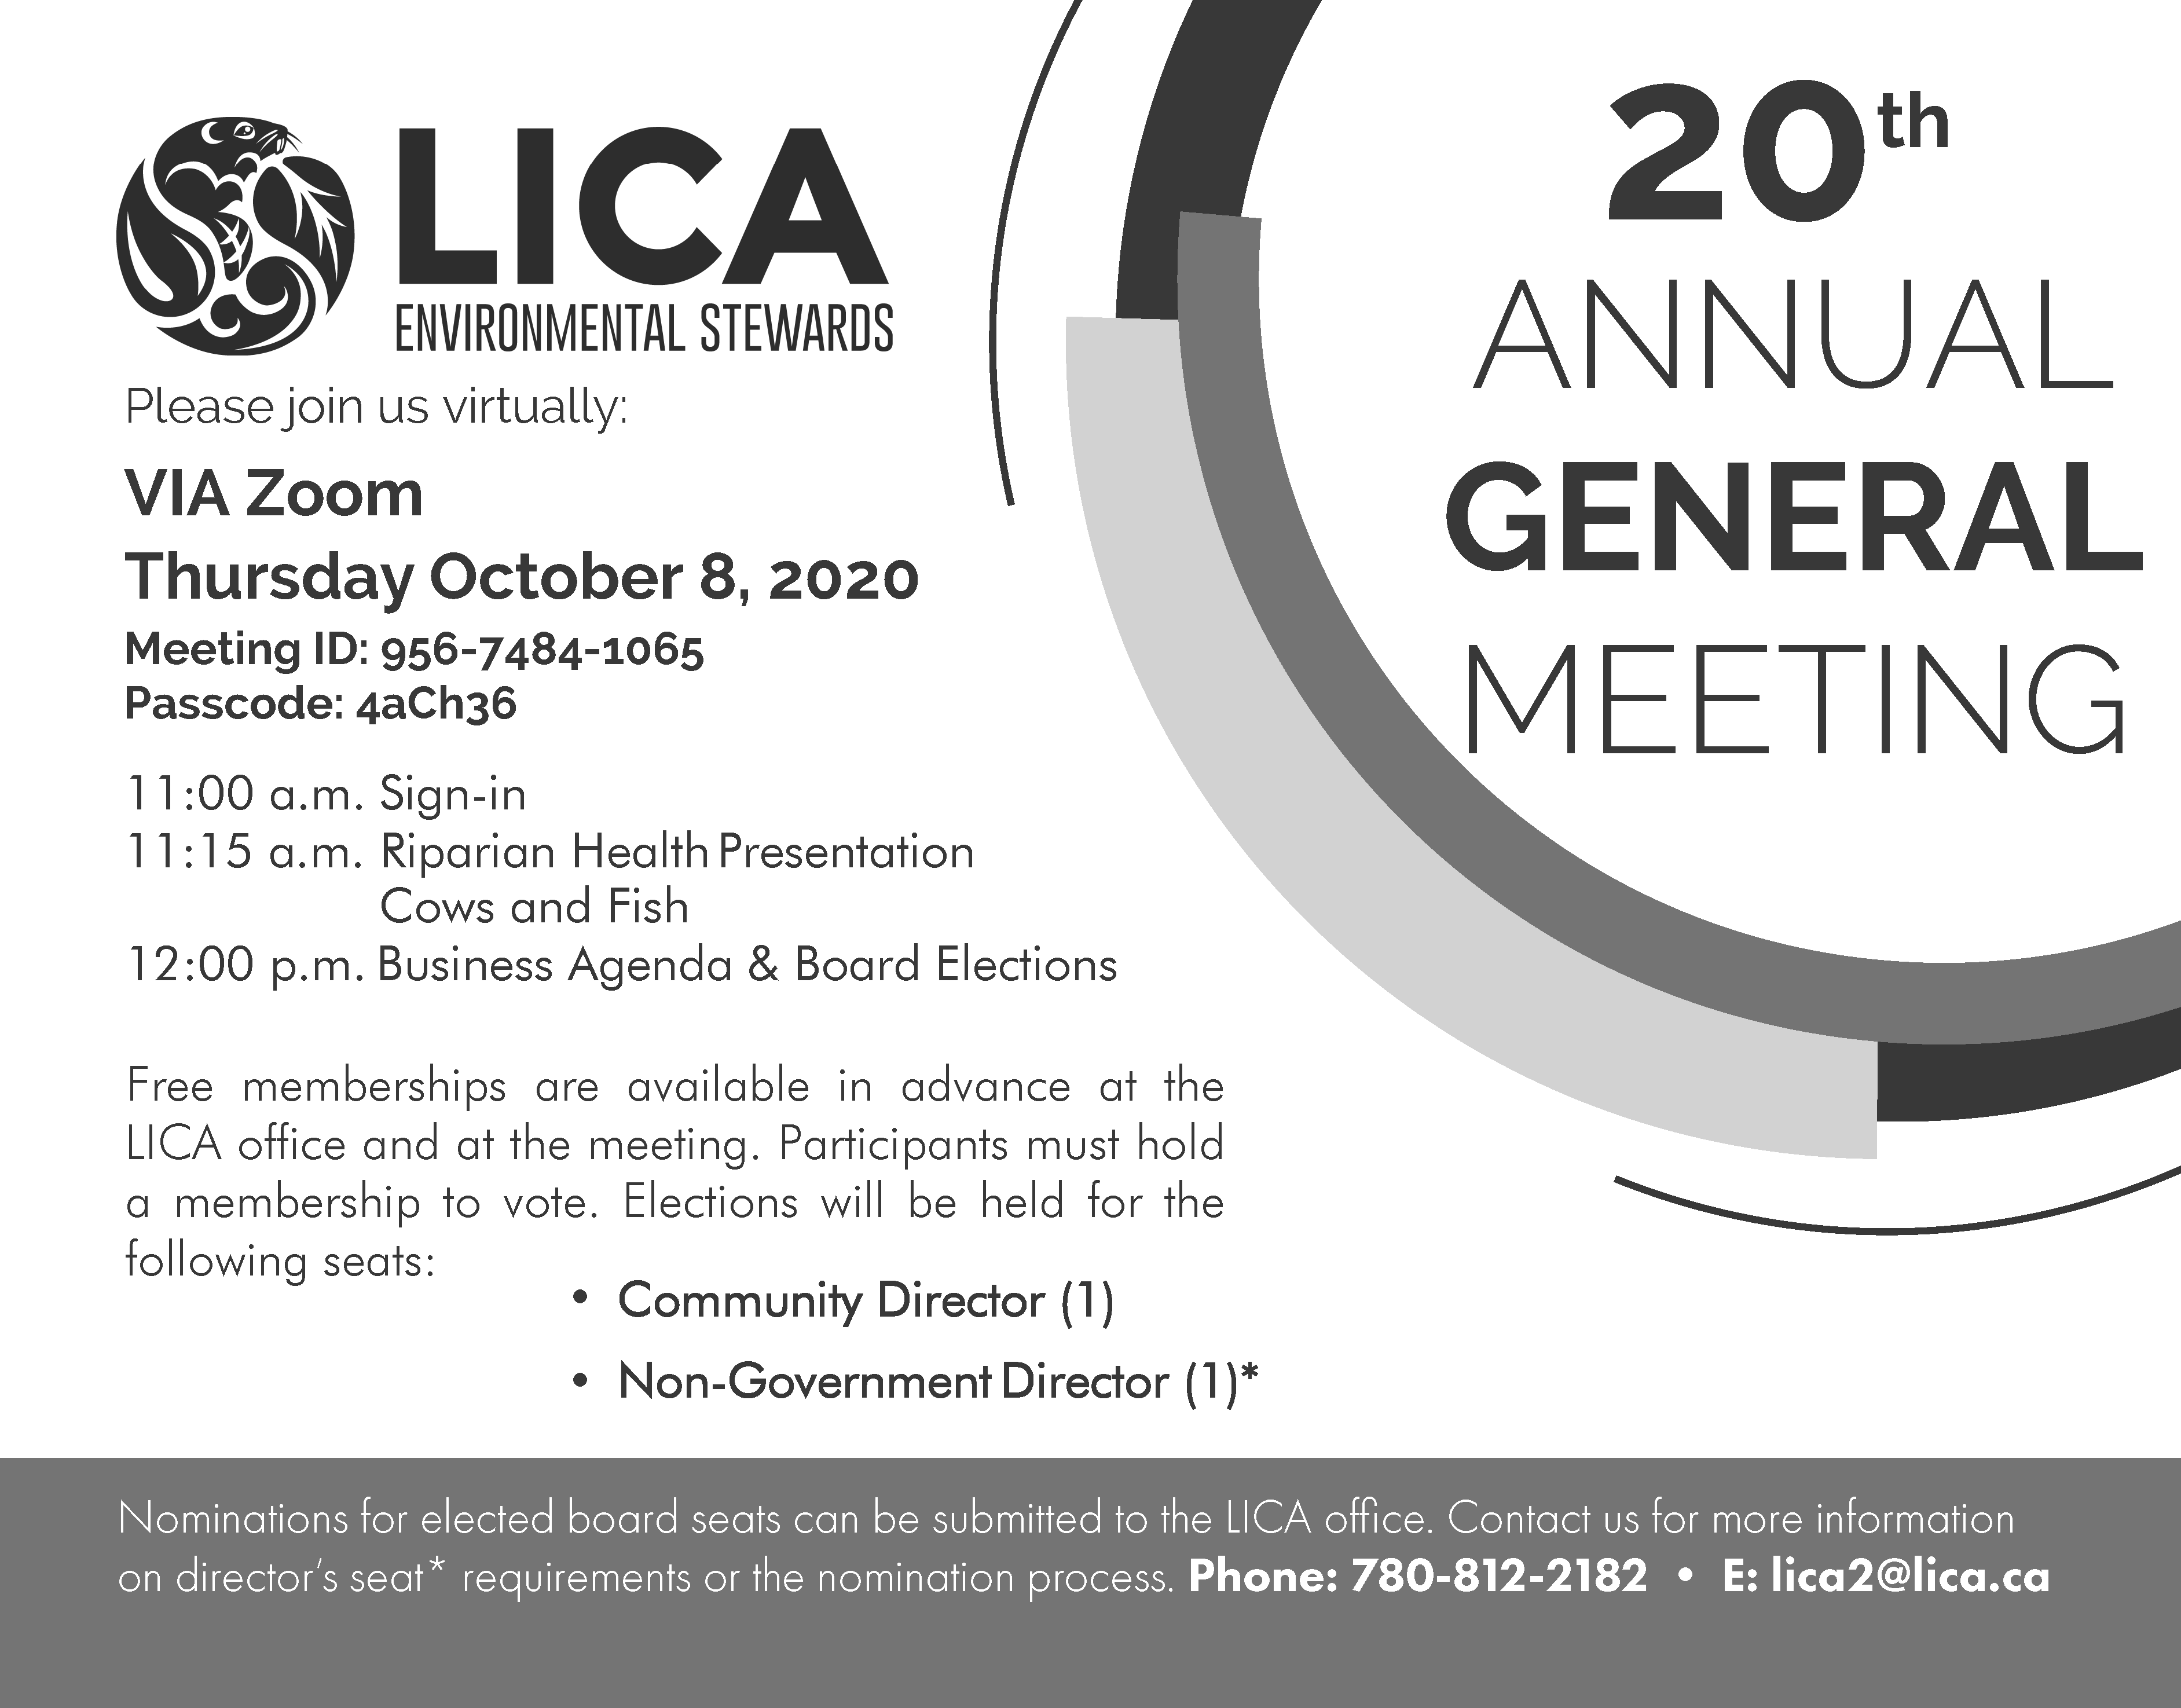 LICA's 20th Annual General Meeting @ VIA Zoom